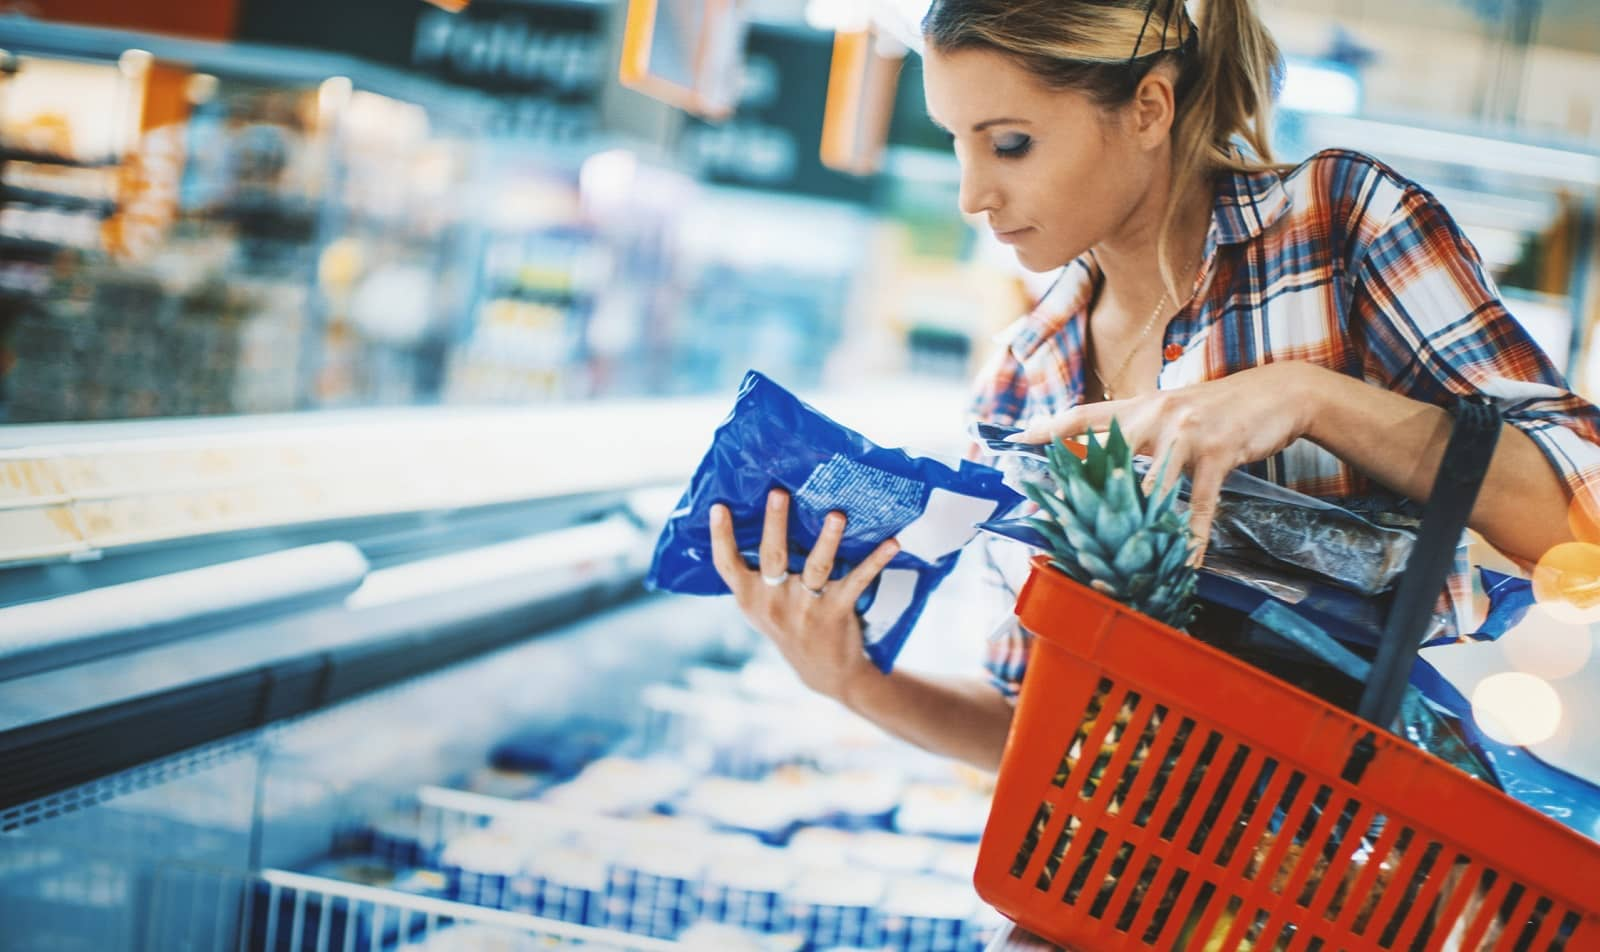 Woman bying frozen food at a supermarket.